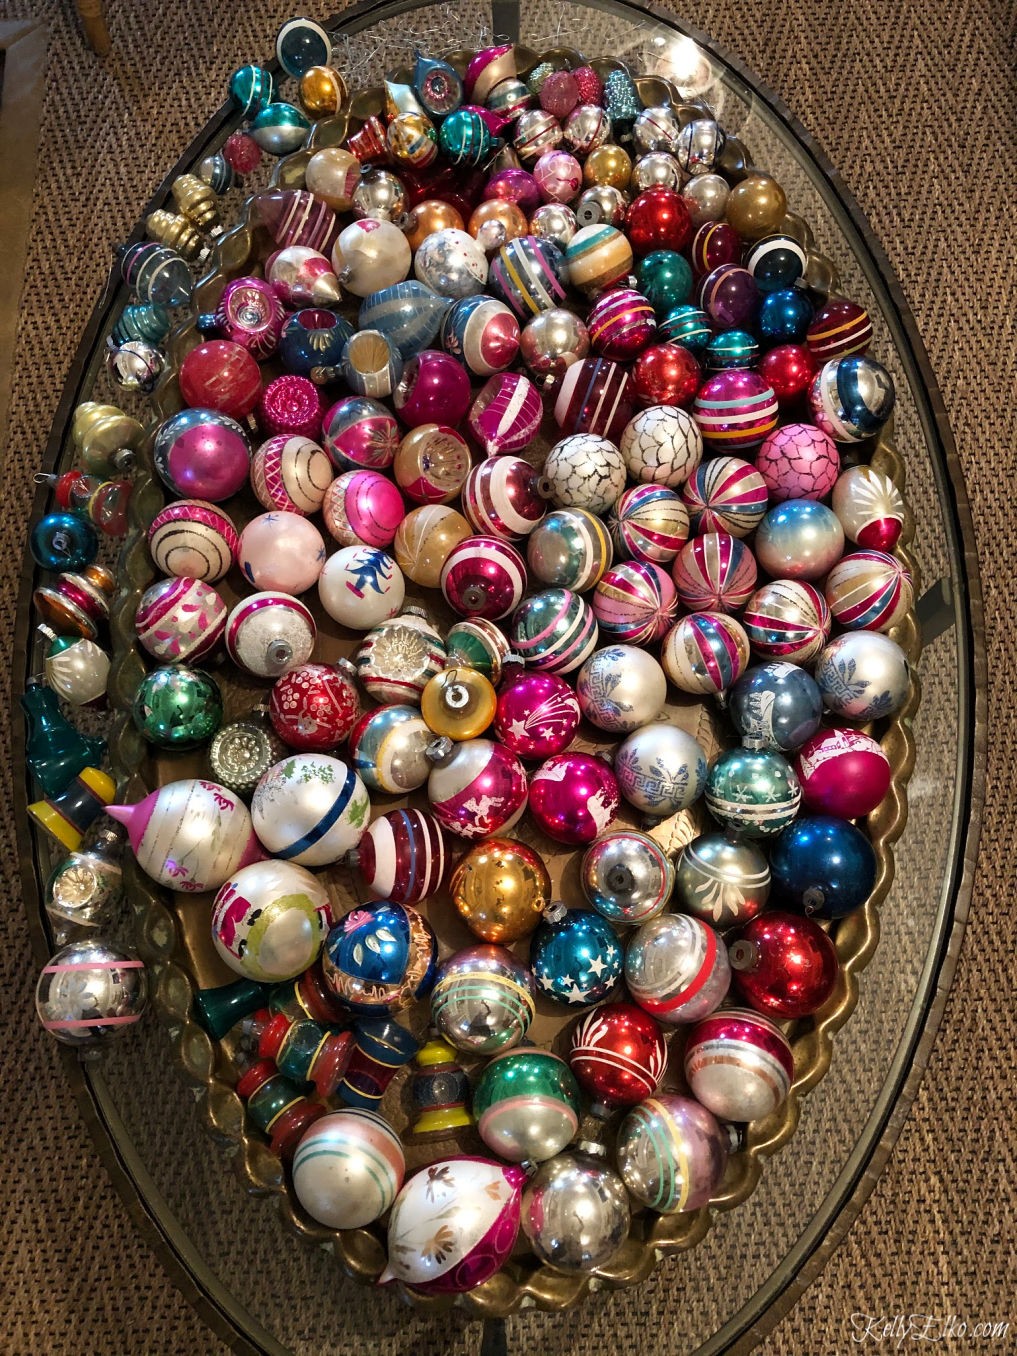 Huge collection of vintage glass ornaments kellyelko.com #shinybrites #vintageornaments #vintagechristmas #christmasornaments #vintage #christmasdecor